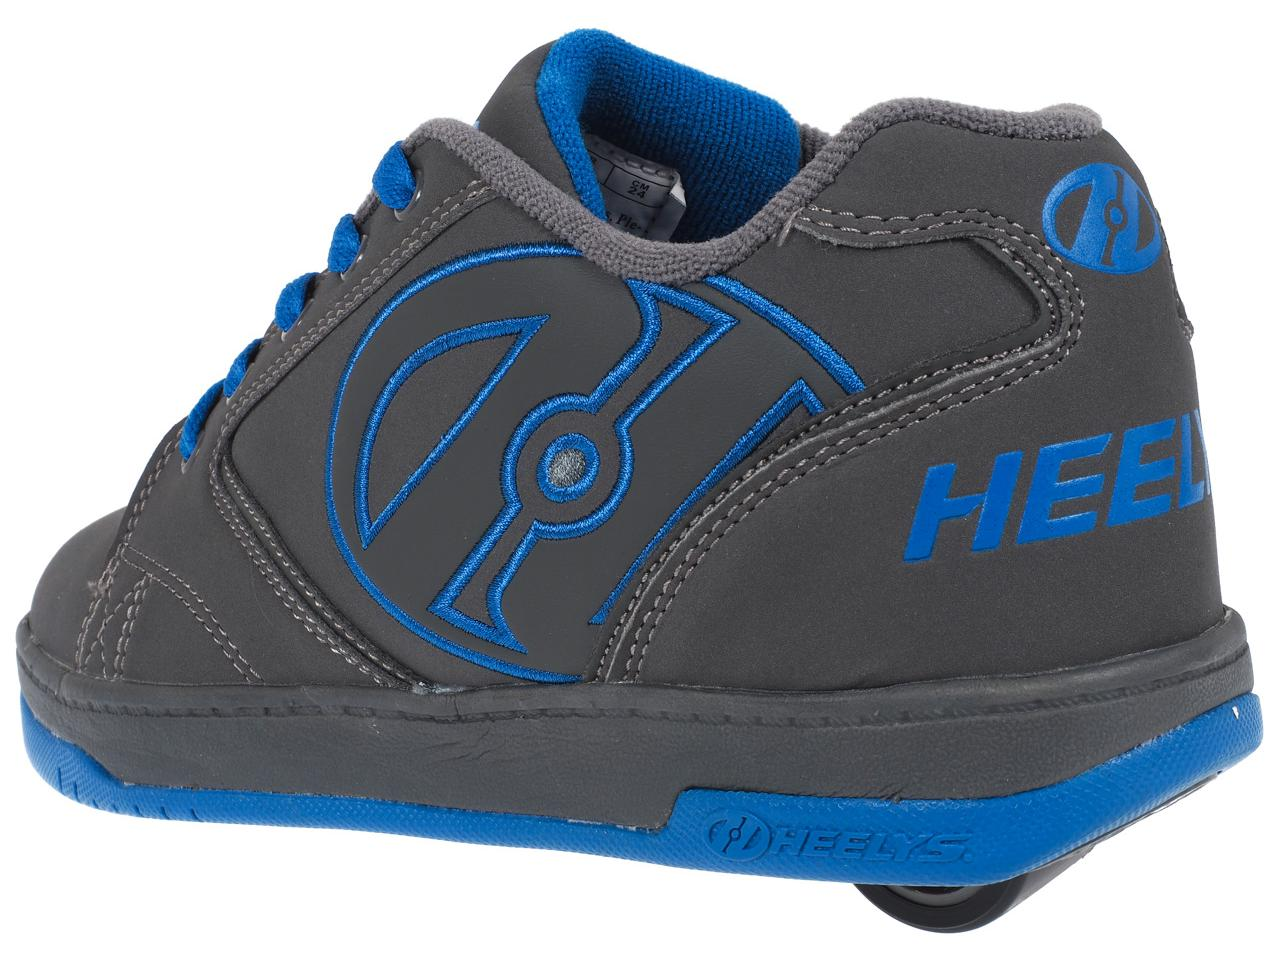 Shoes-to-Casters-Heelys-Propel-2-0-Grey-Royal-Grey-15616-New thumbnail 3